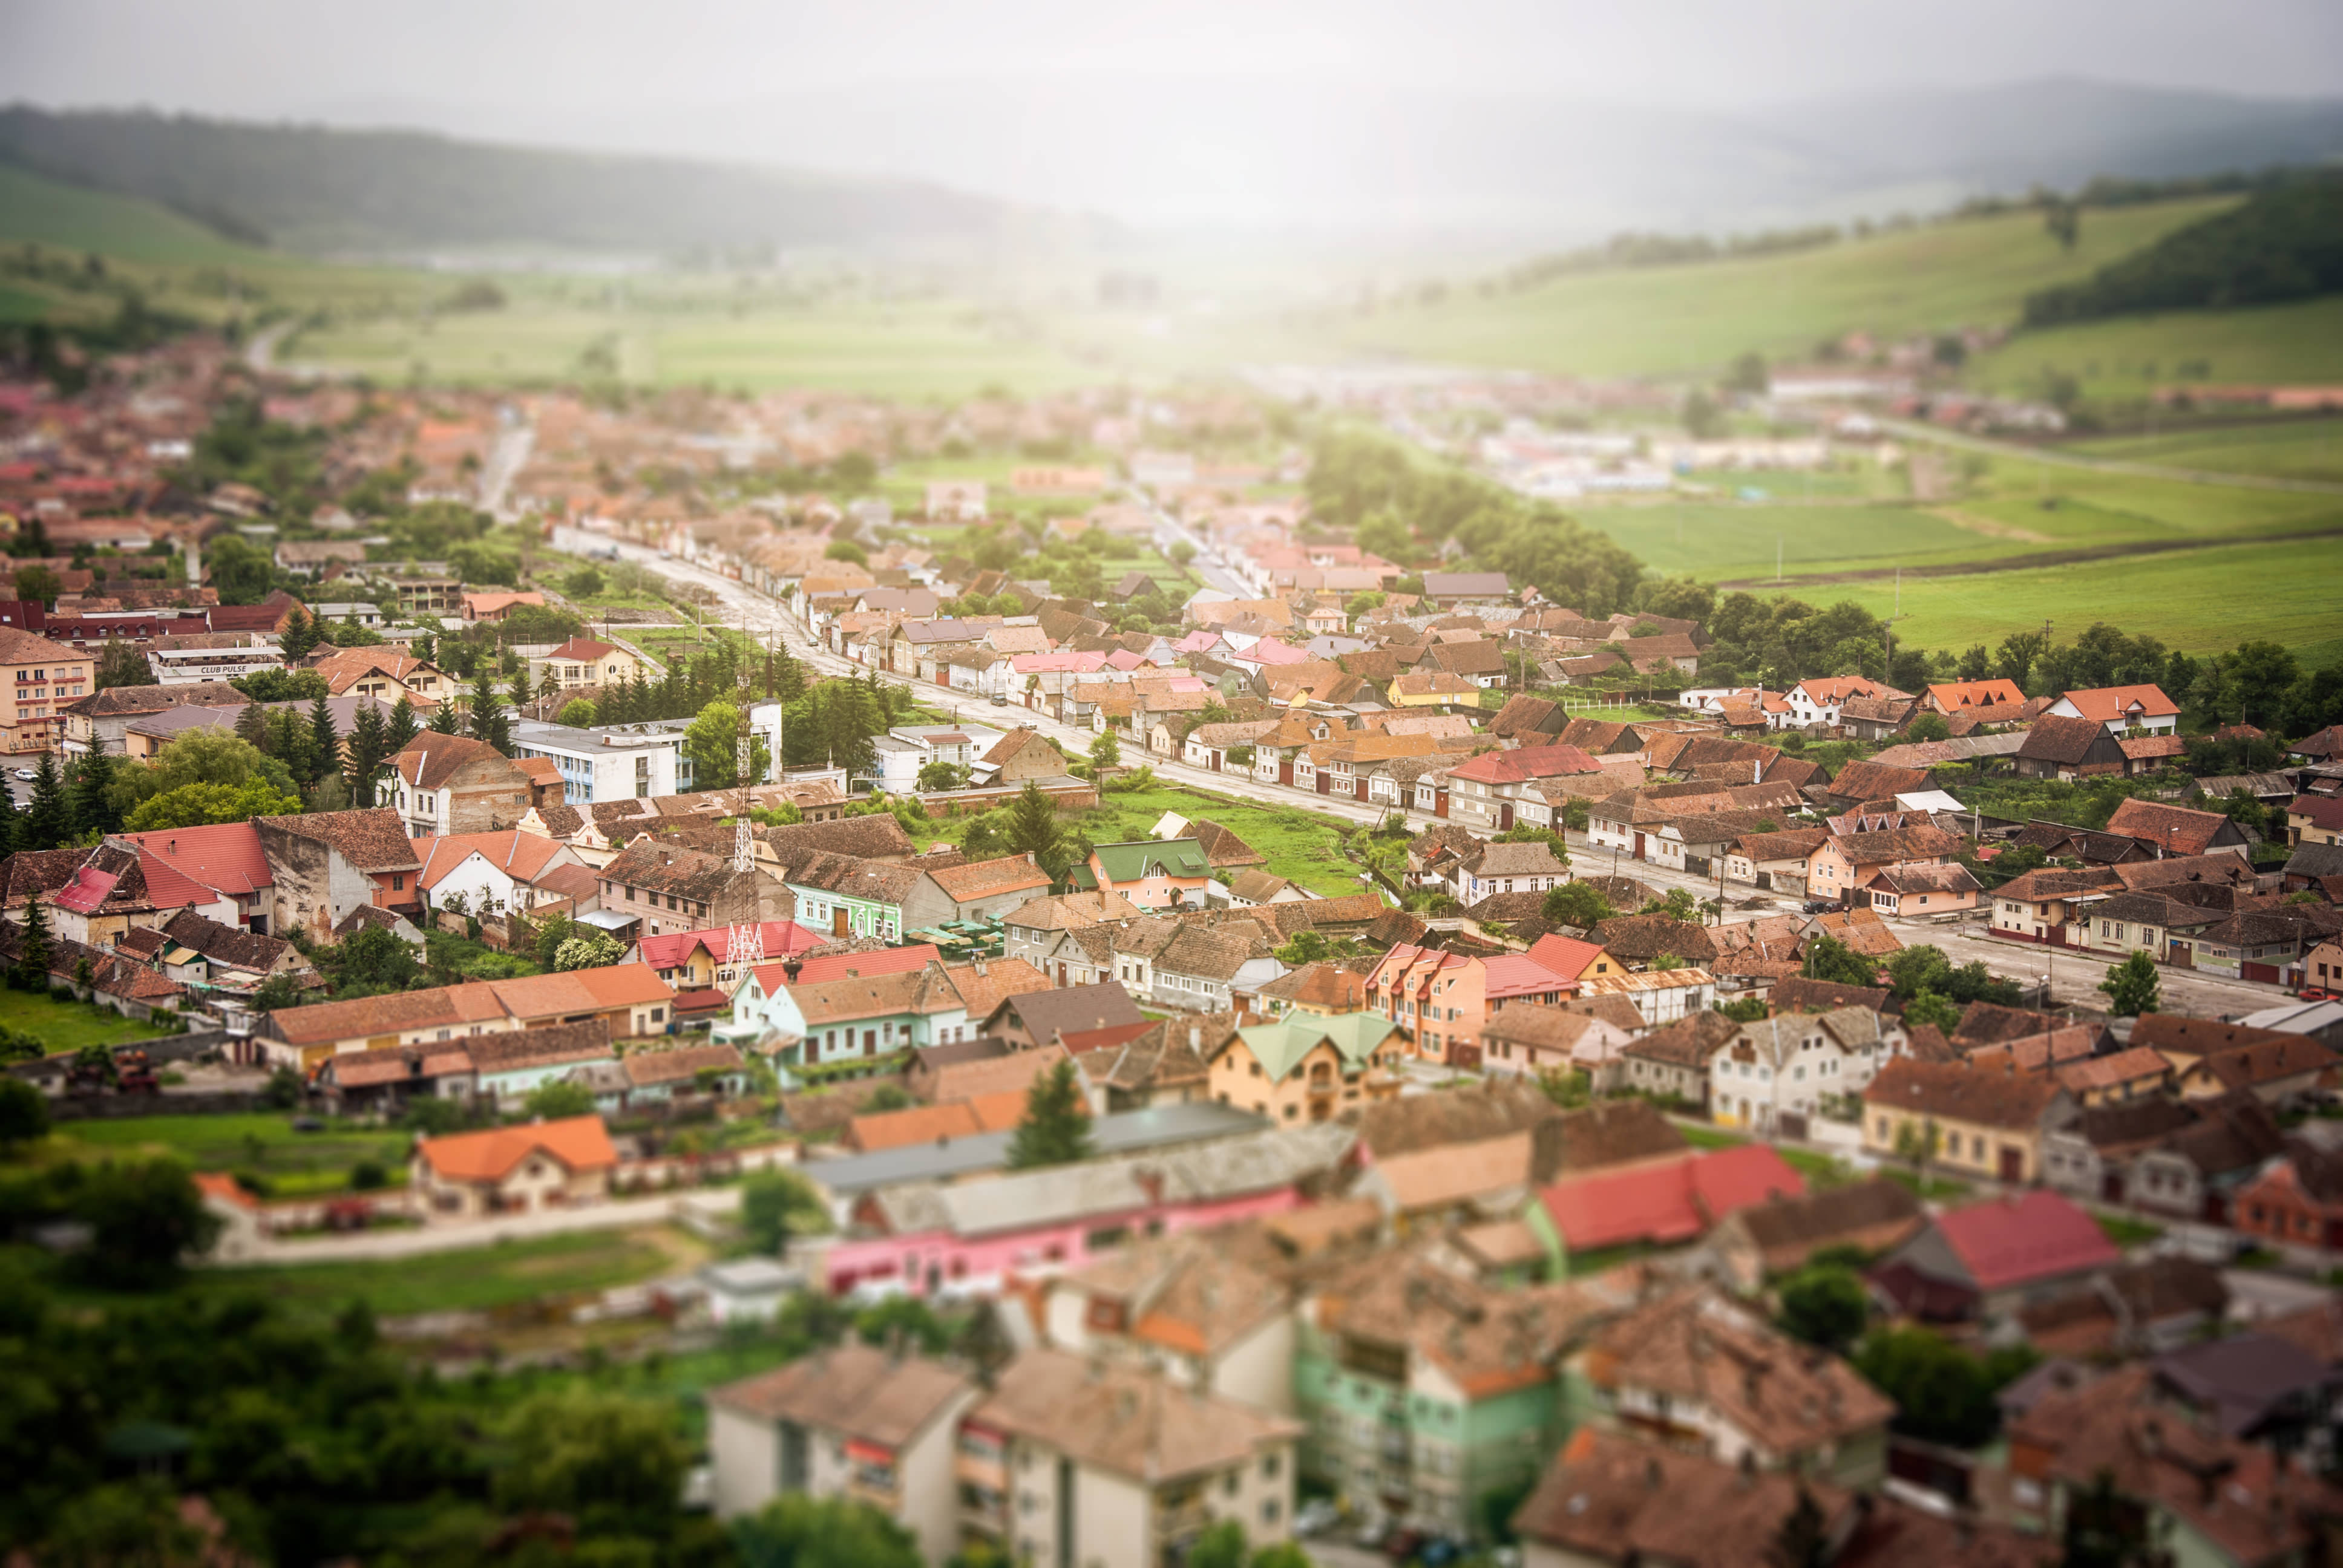 village full of properties for sale looking to move home